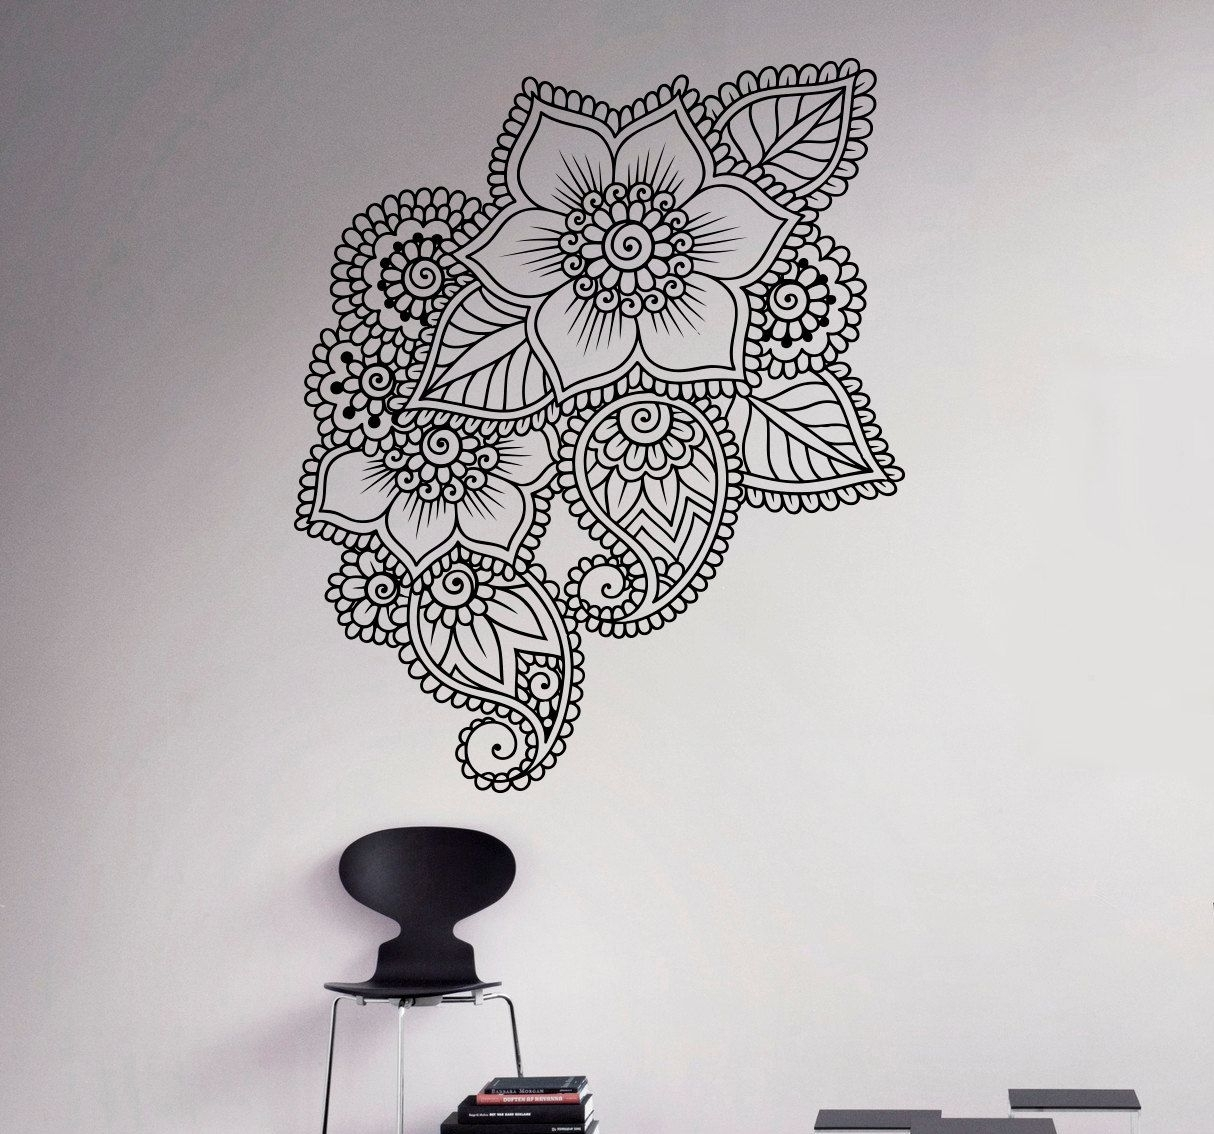 Abstract Flowers Mehndi Wall Vinyl Decal Henna Indian Ornament Wall Throughout Most Recently Released Henna Wall Art (View 2 of 20)